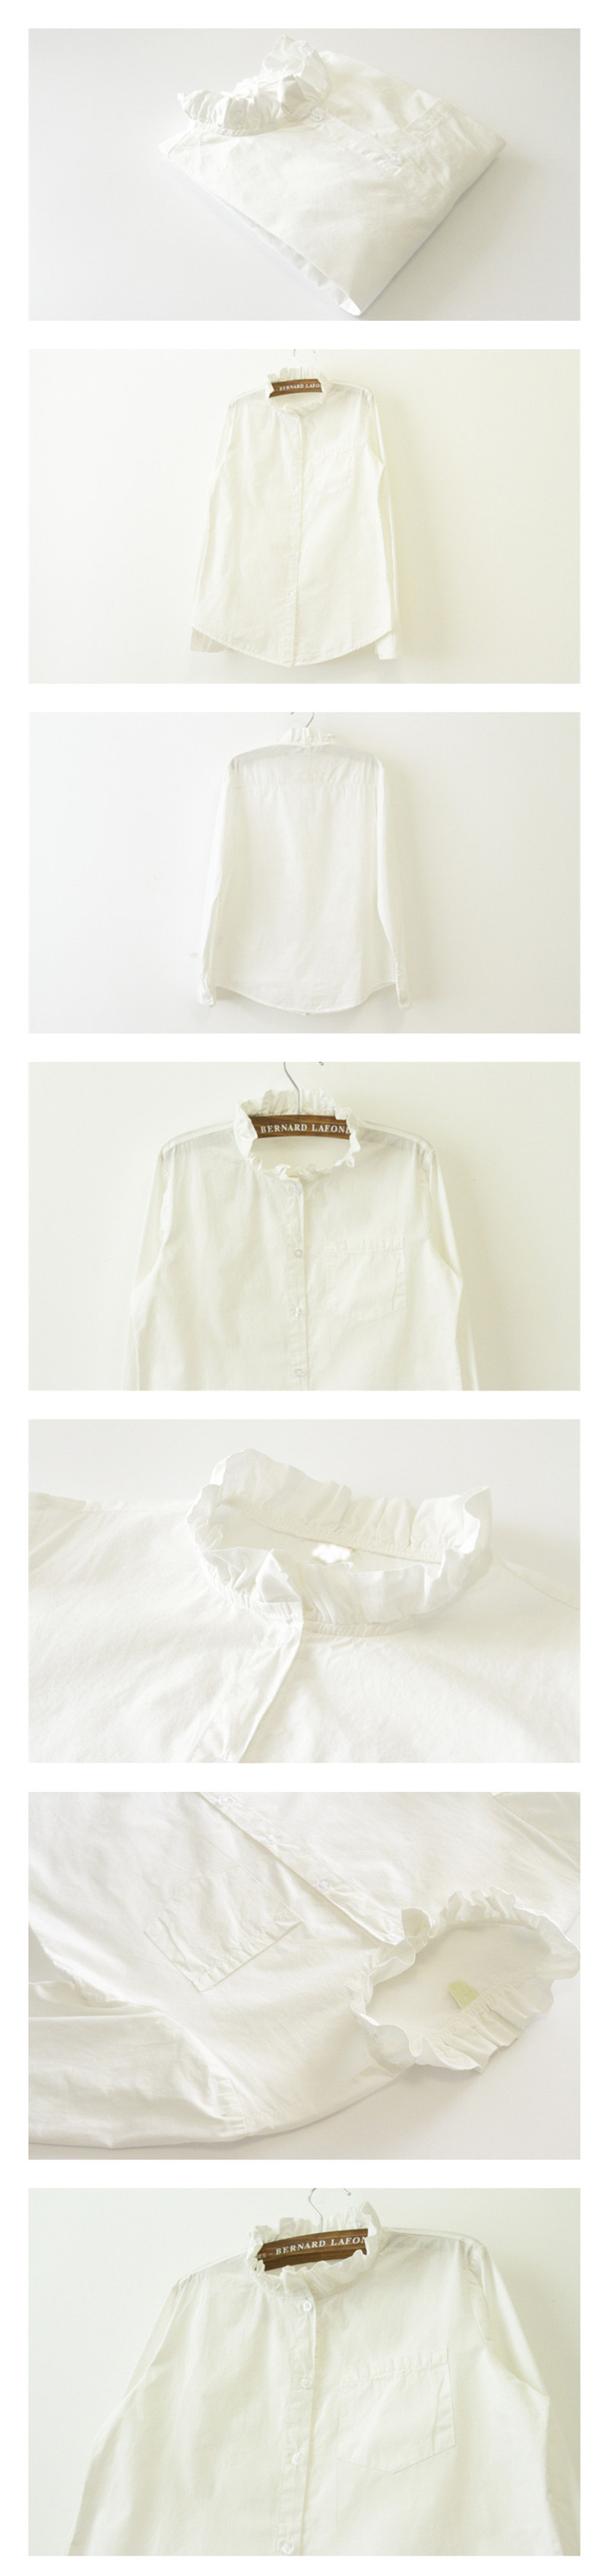 a5fa897652d ... Ruffled Collar Plus Size Women Work Blouse Lady Clothing Fashion Casual  Tops. material   100% cotton. color   white. size   S-M-L-XL. 637